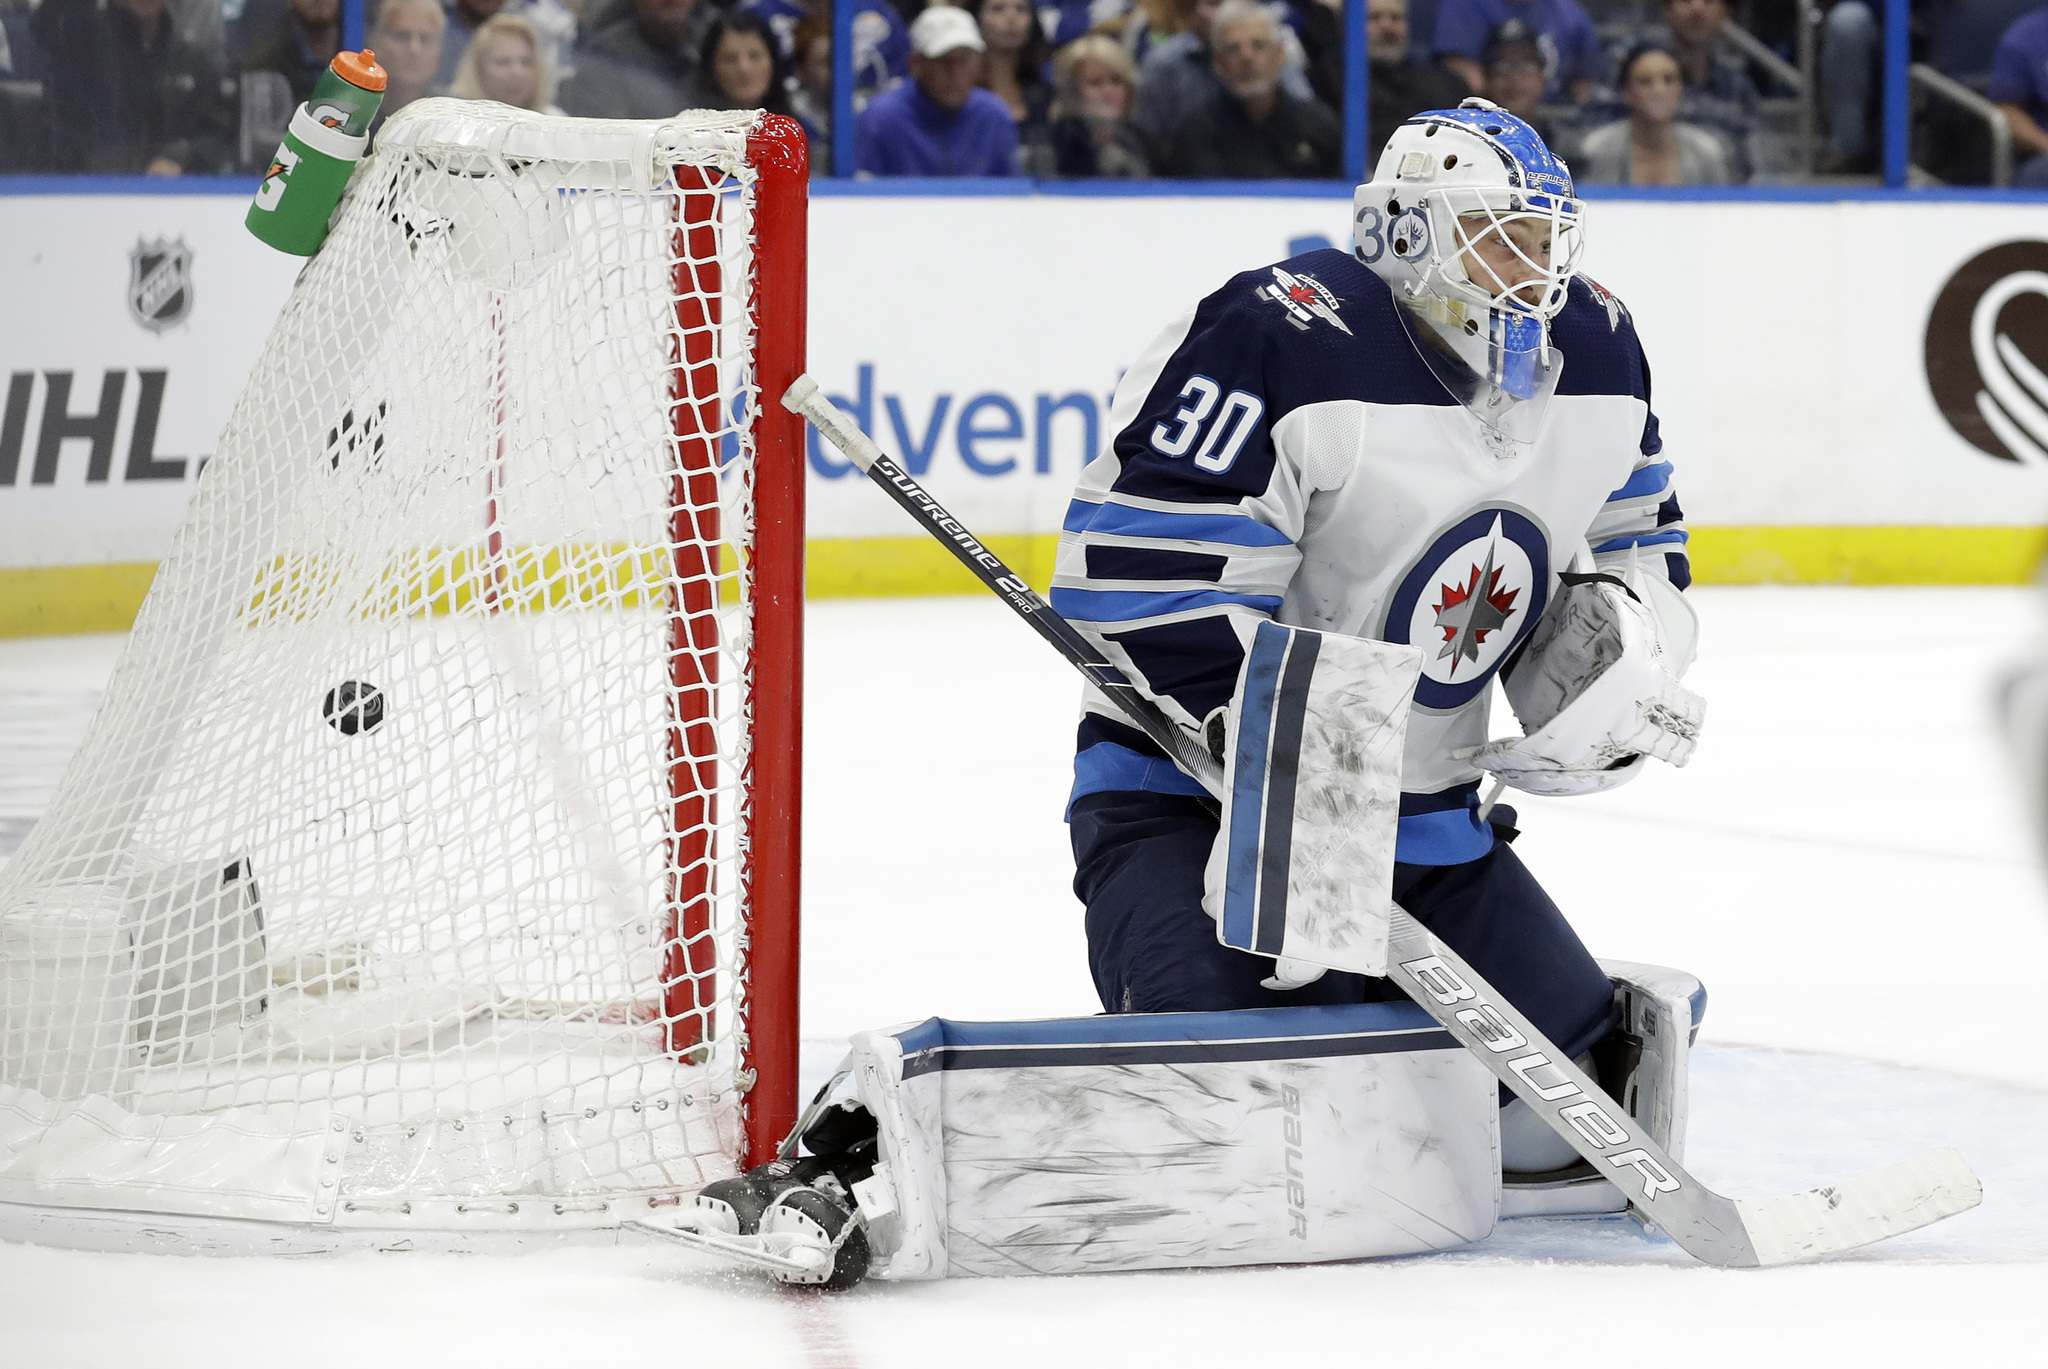 Tampa scored the winning goal on Laurent Brossoit Tuesday, so he was dinged with the loss in the stats column. He will start Friday in Carolina. (Chris O'Meara /The Associated Press files)</p>